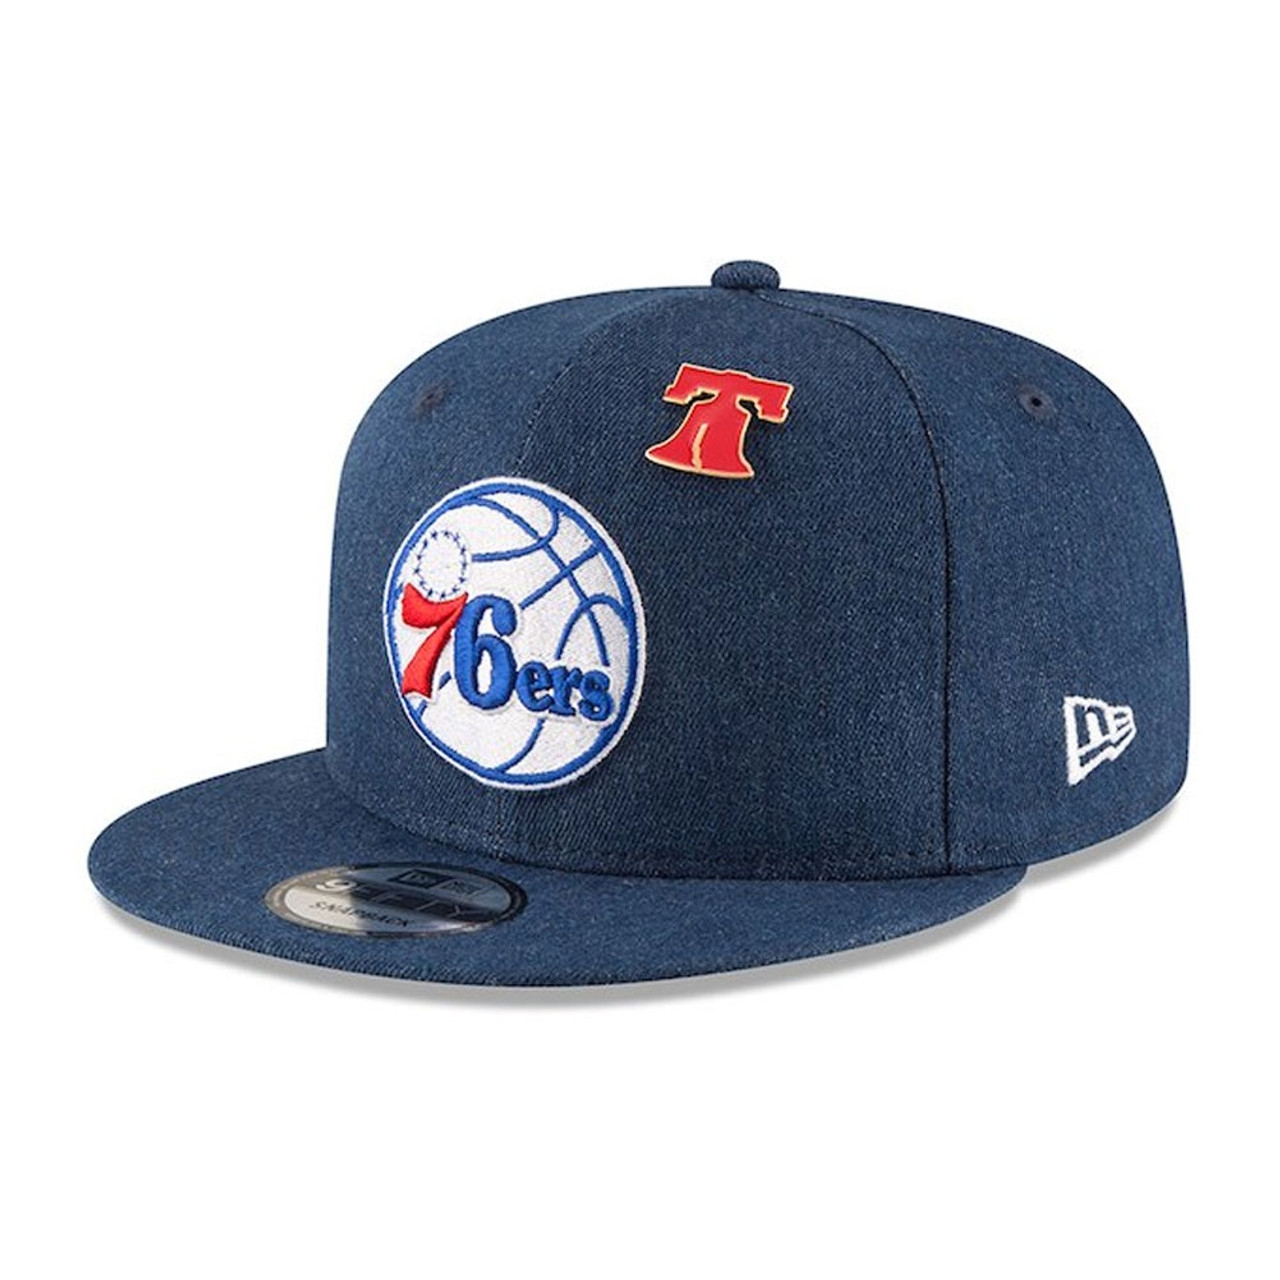 NEW ERA philadelphia 76ers 9forty adjustable NBA basketball league cap   royal  849cea277241